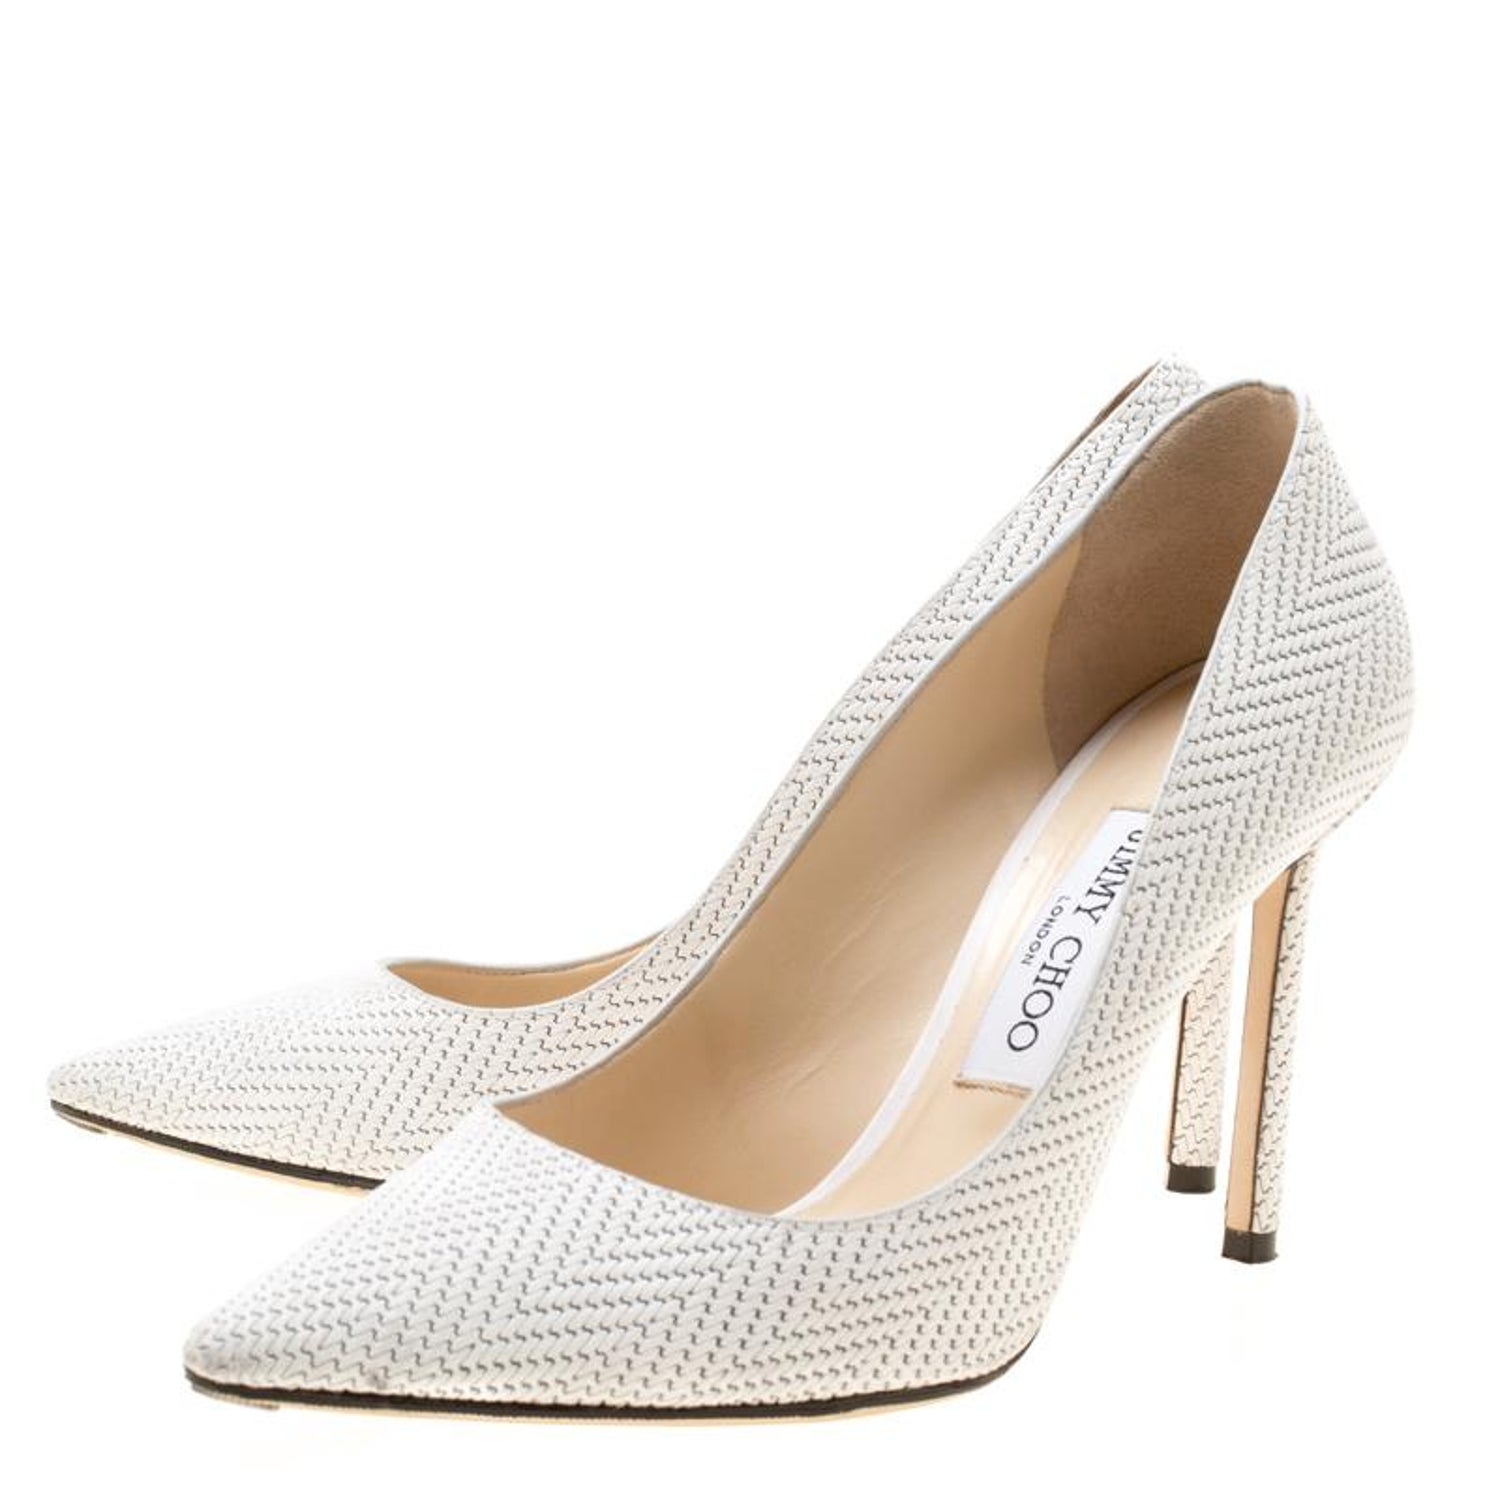 8f28fad550b Jimmy Choo White Knitted Nubuck Leather Romy Pointed Toe Pumps Size 37 For  Sale at 1stdibs